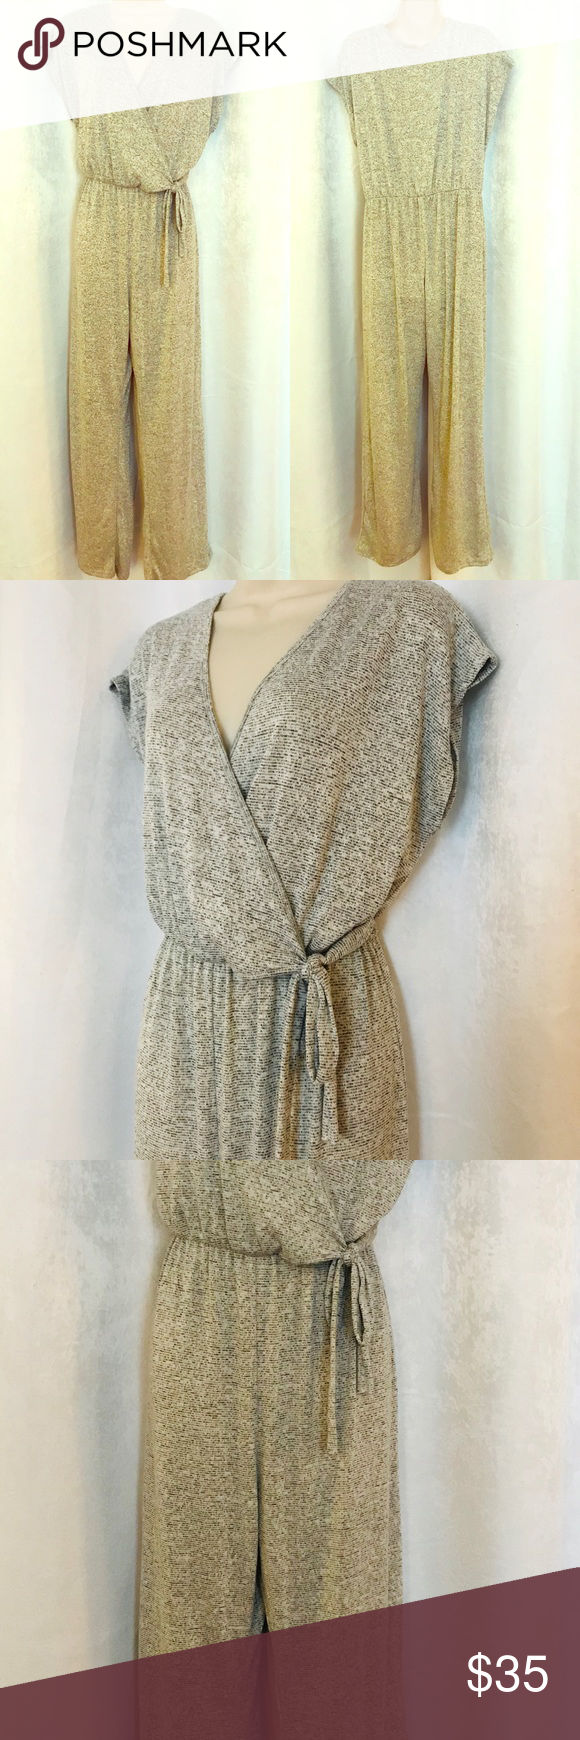 4a58e9bd6c68 Caution In The Wind Heather Gray Jumpsuit Caution to the wind Heather Gray  so comfy jumpsuit Size XL jumpsuit is made of a super soft light sweater  material ...